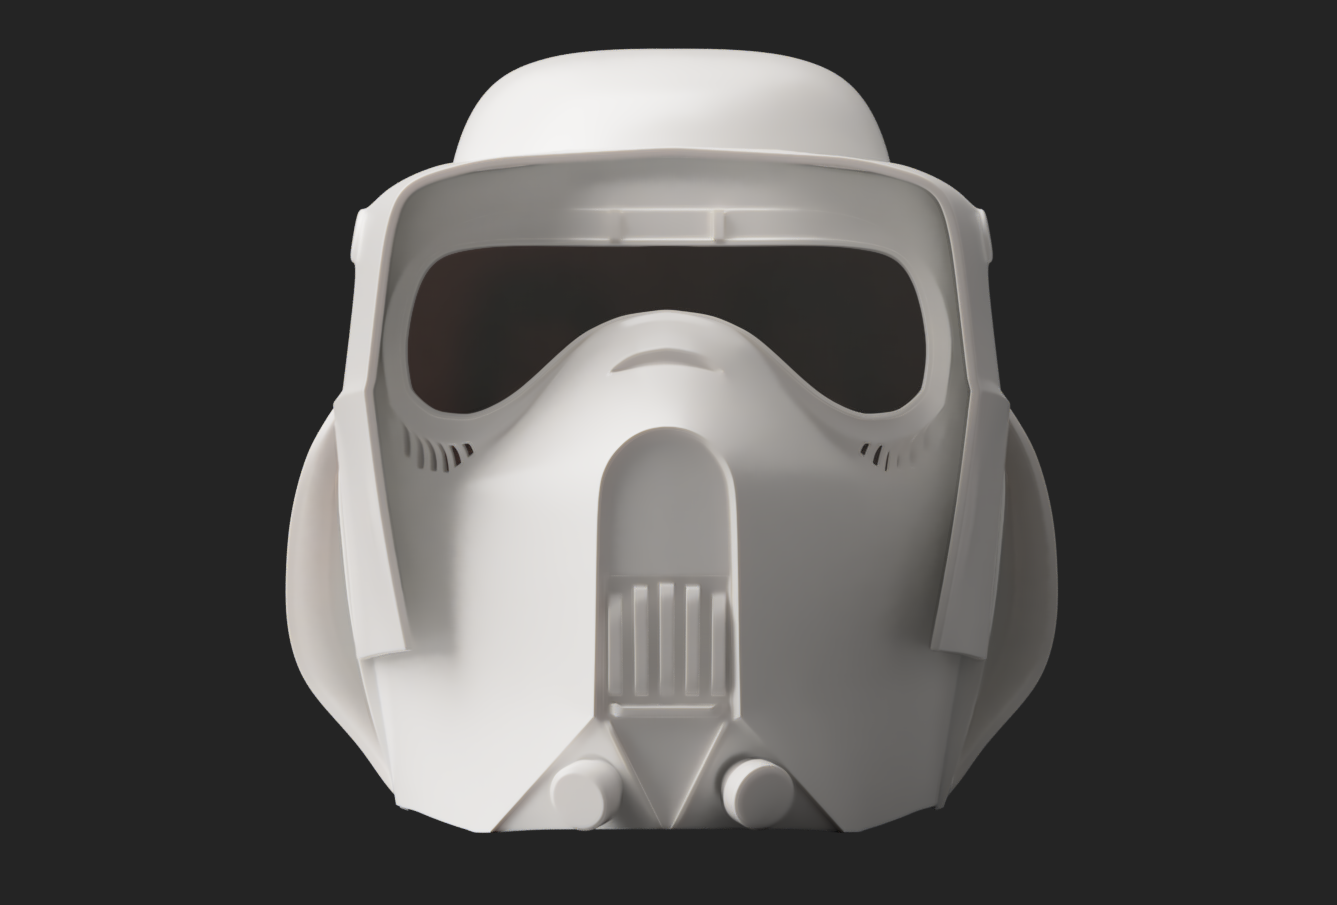 Kashyyyk Clone Trooper Armor - 3D Print Files - The Galactic Armory